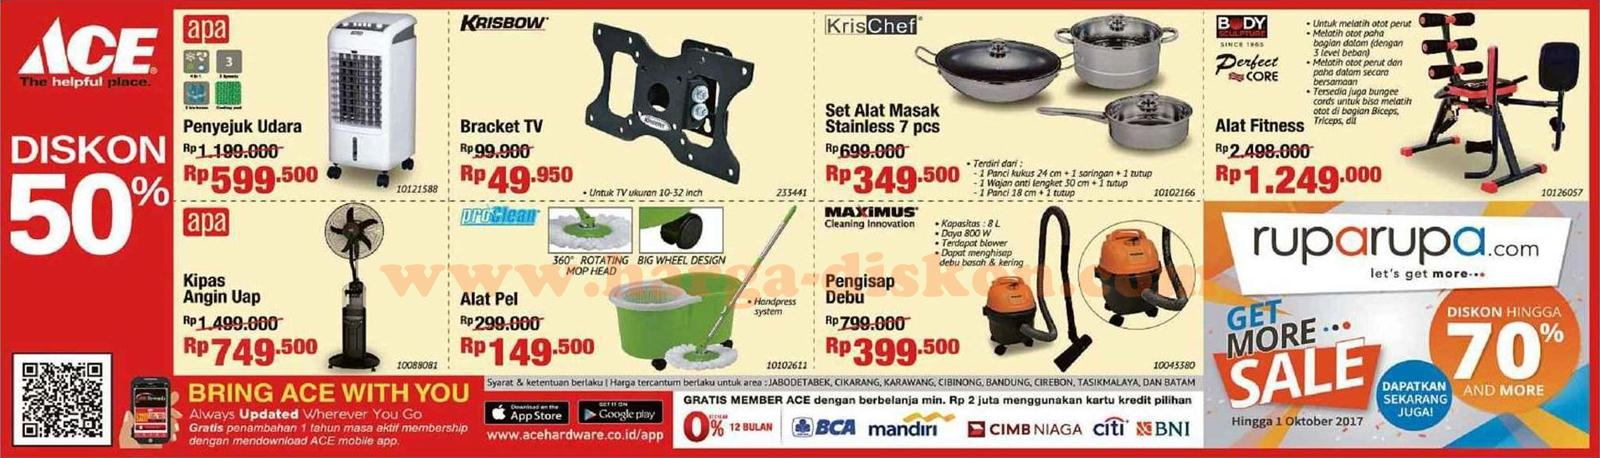 harga diskon promo ace hardware terbaru boom sale periode 13 september 17 oktober 2017. Black Bedroom Furniture Sets. Home Design Ideas